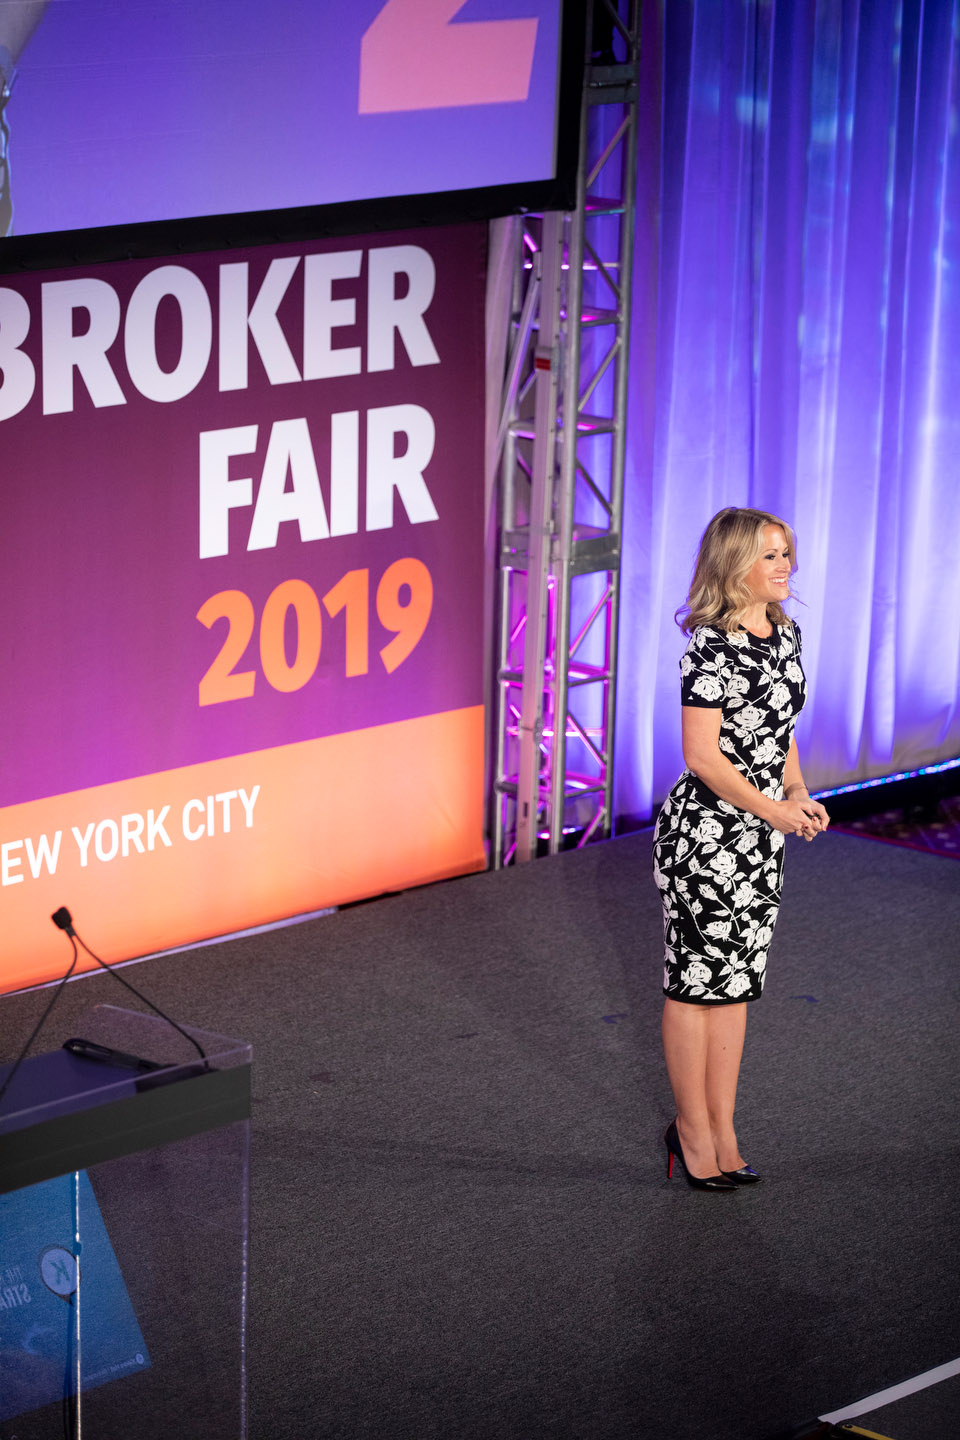 Broker Fair 2019 - Presented by deBanked - 371